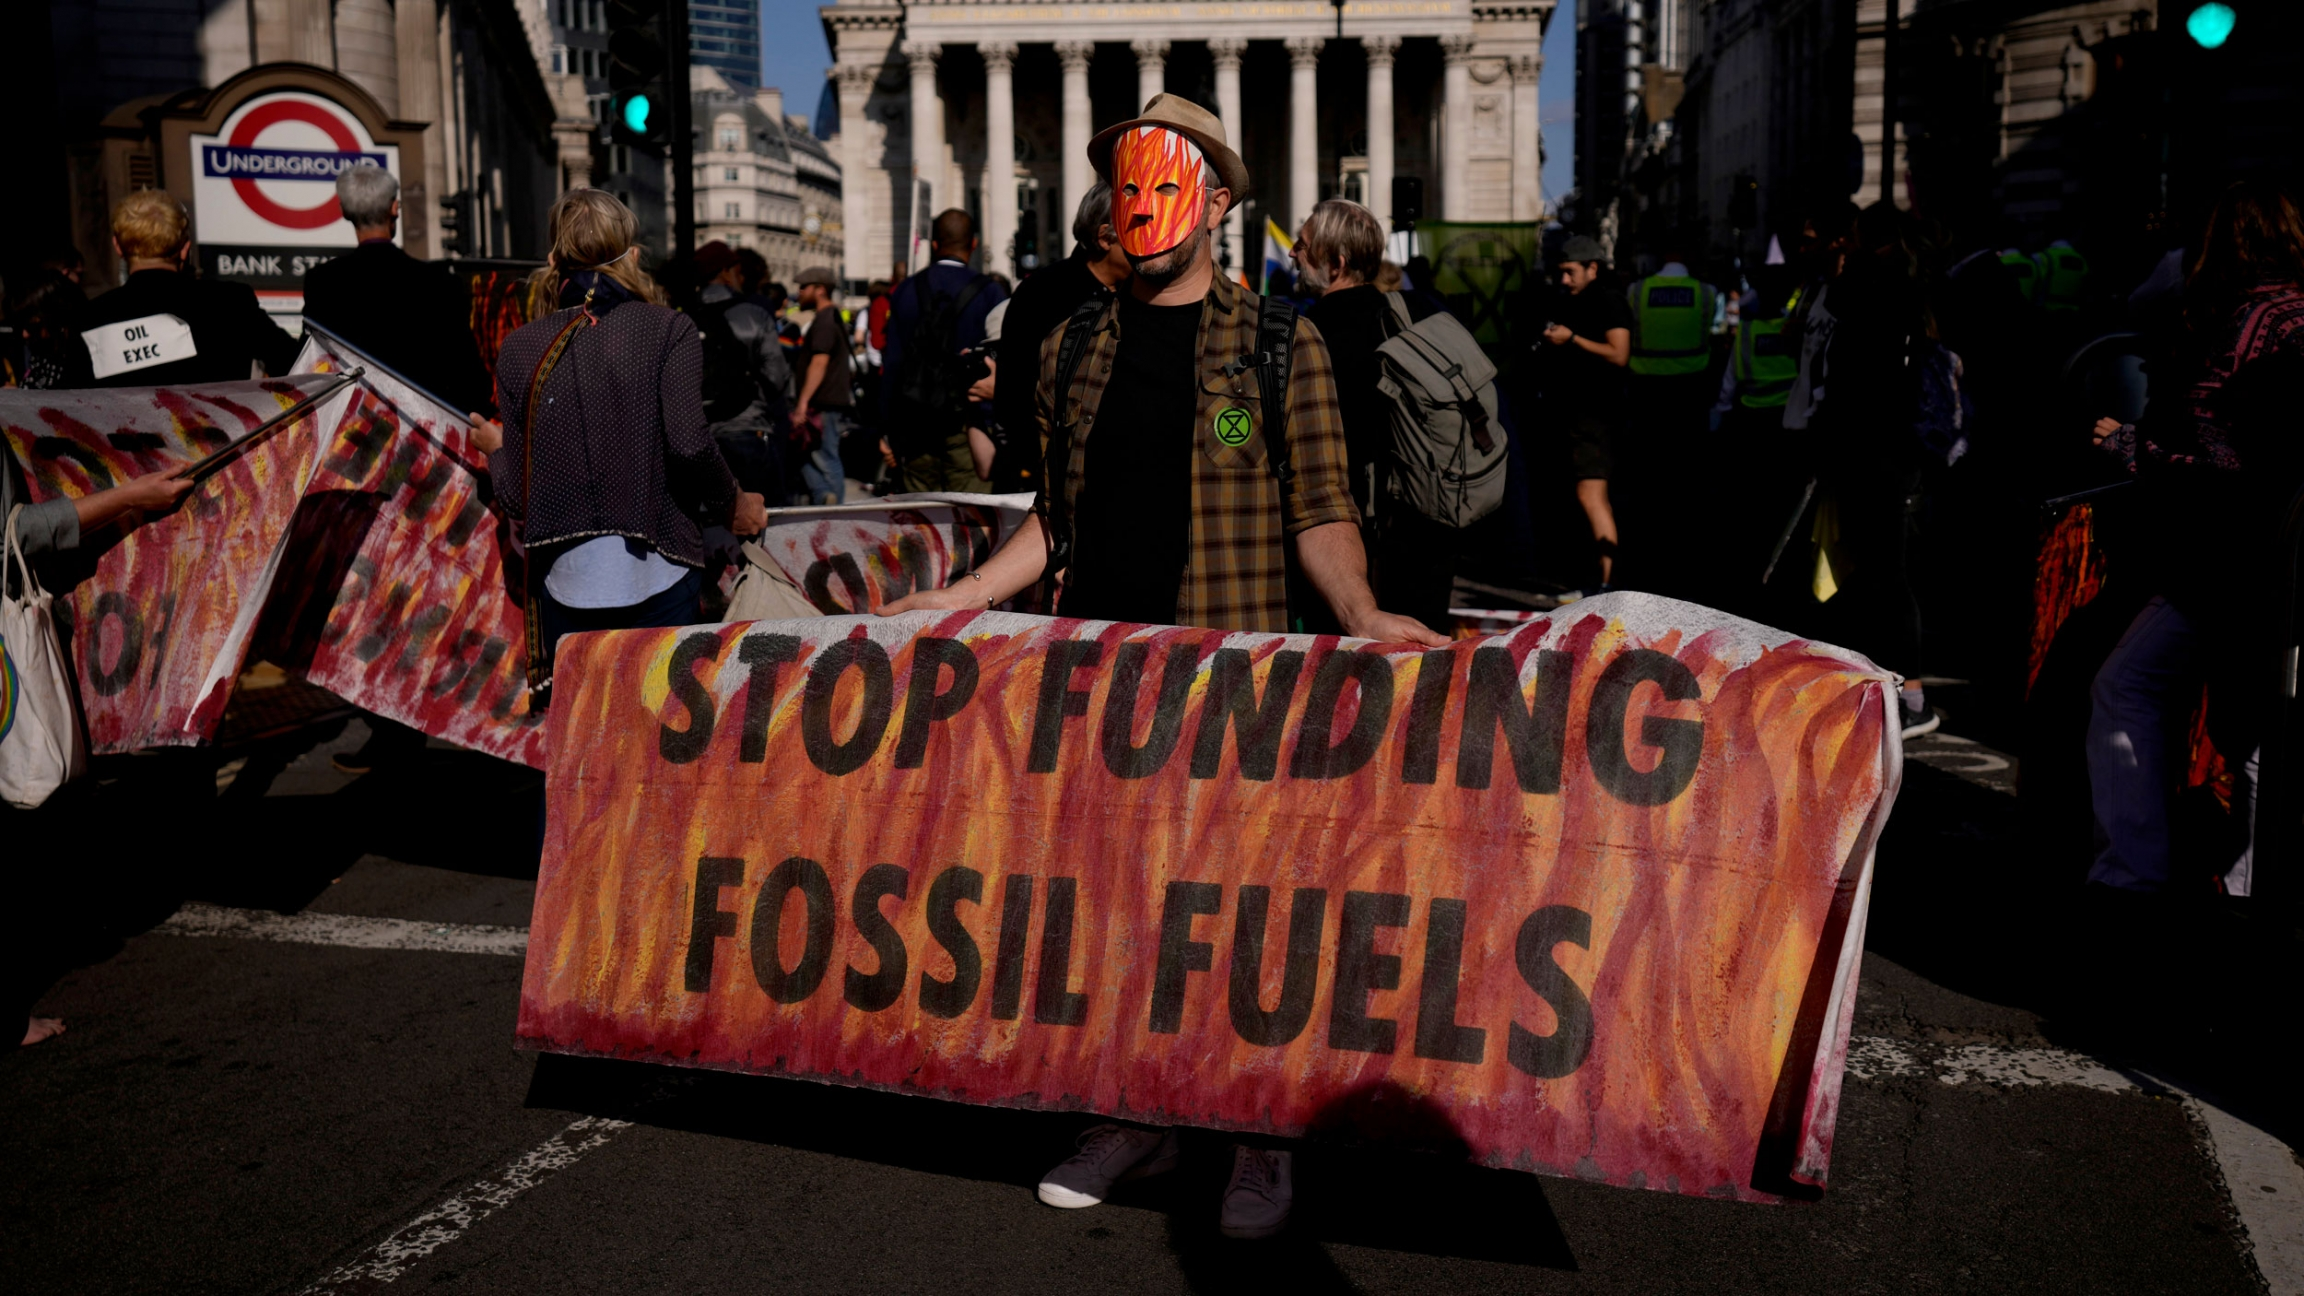 In this Thursday, Sept. 2, 2021 file photo, an Extinction Rebellion climate change activist holds a banner backdropped by the Bank of England, at left, and the Royal Exchange, center, in the City of London financial district in London.